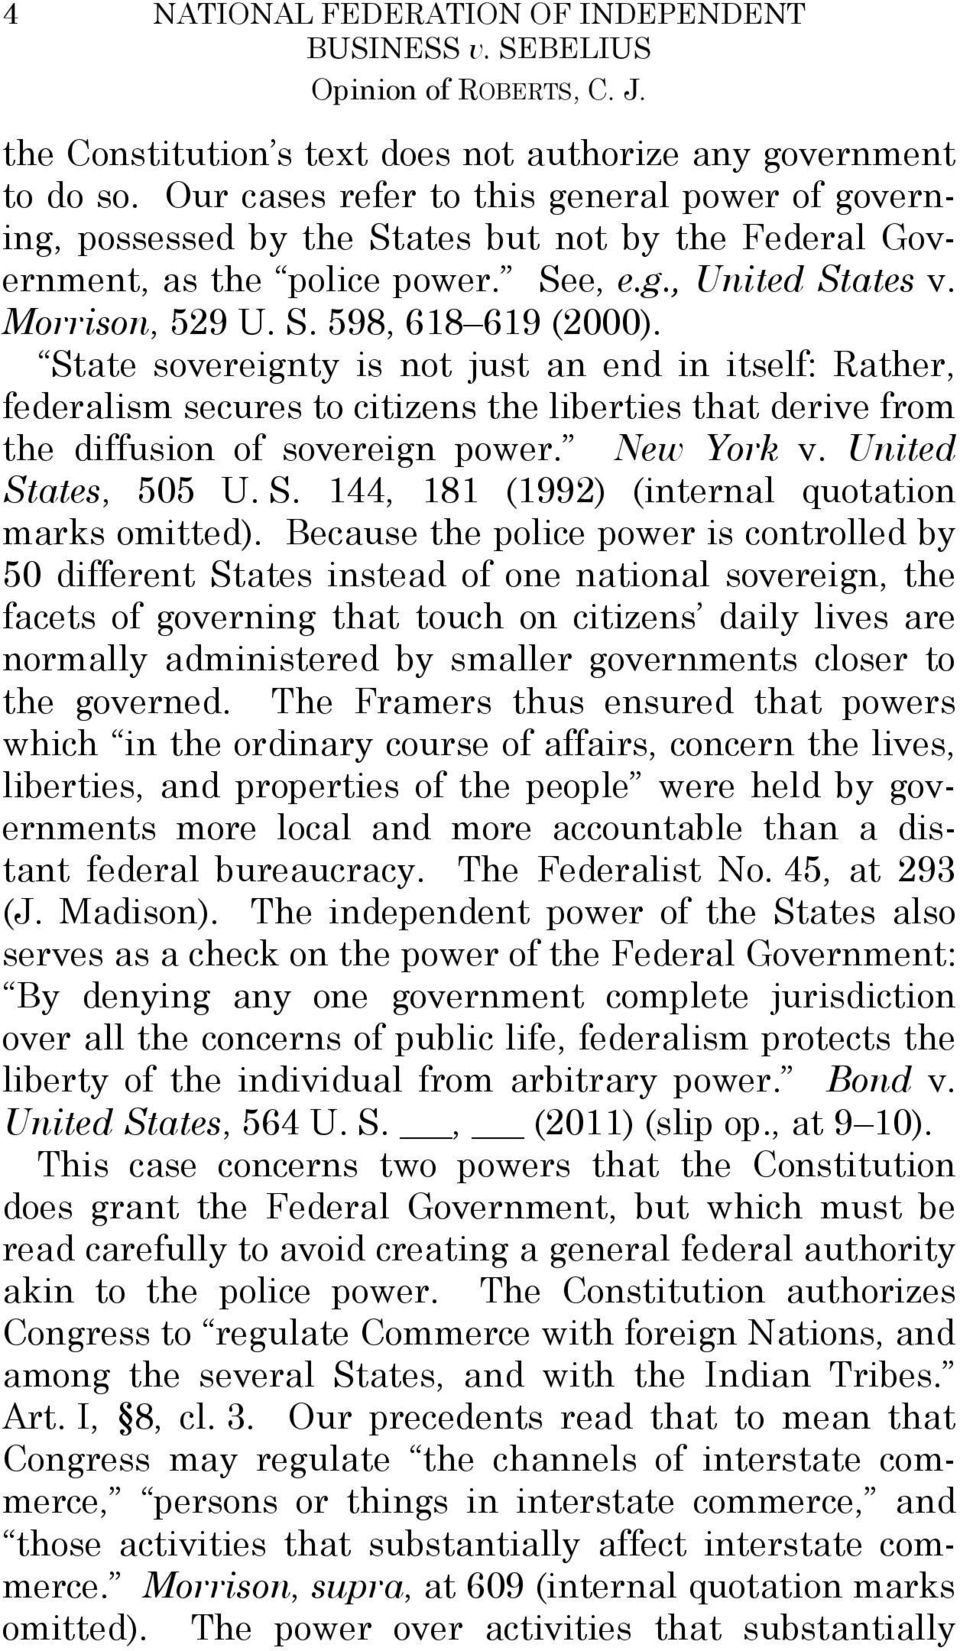 State sovereignty is not just an end in itself: Rather, federalism secures to citizens the liberties that derive from the diffusion of sovereign power. New York v. United St